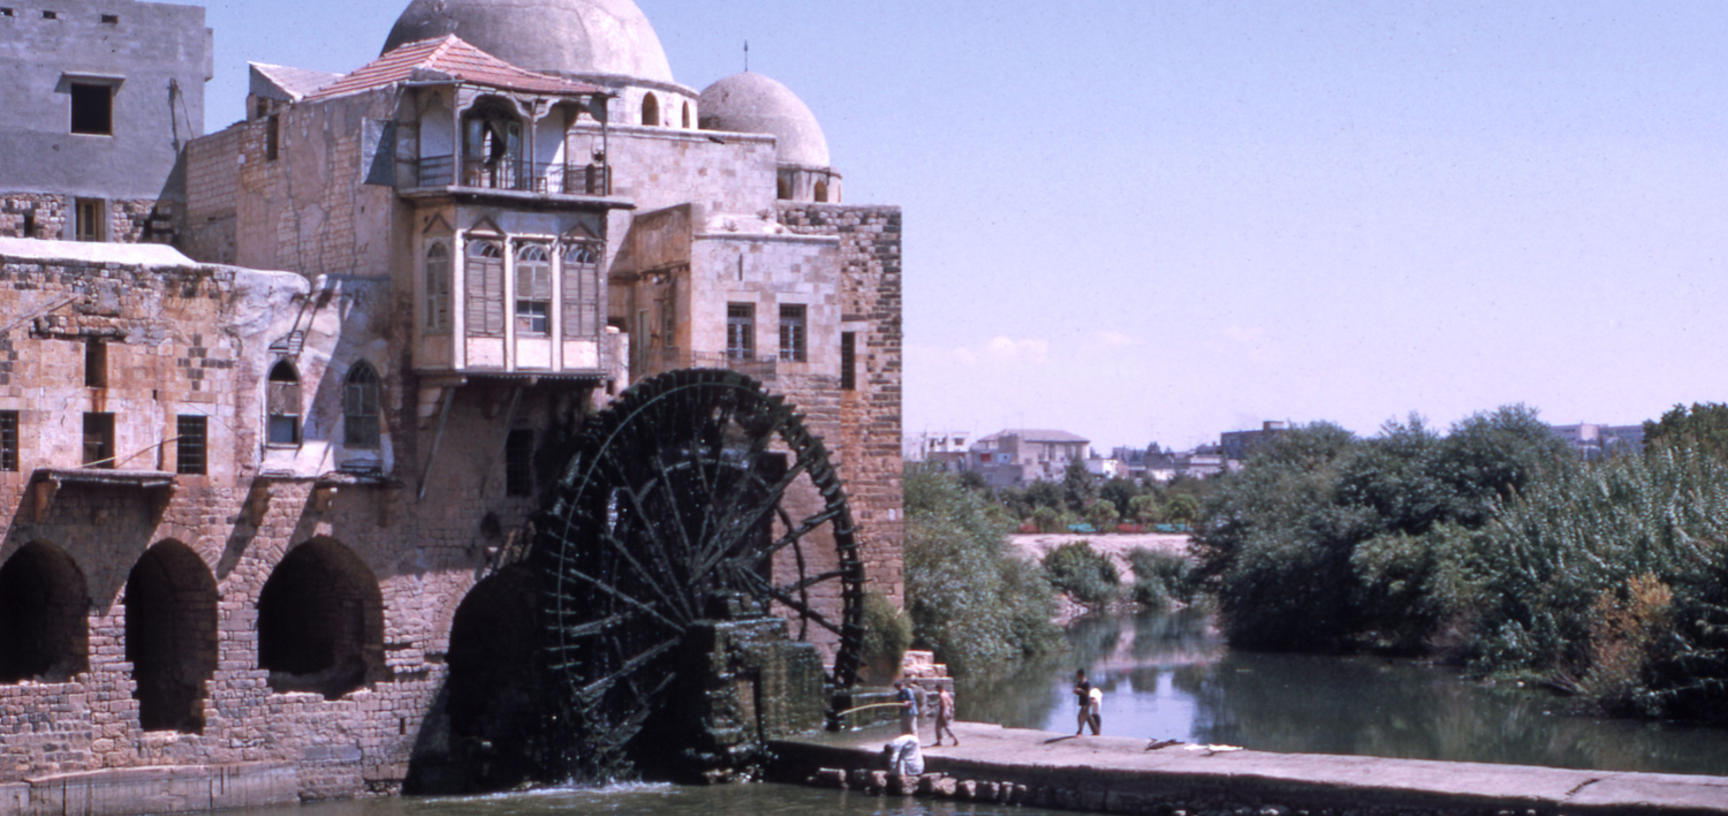 A waterwheel attached to a building rotates over a river.